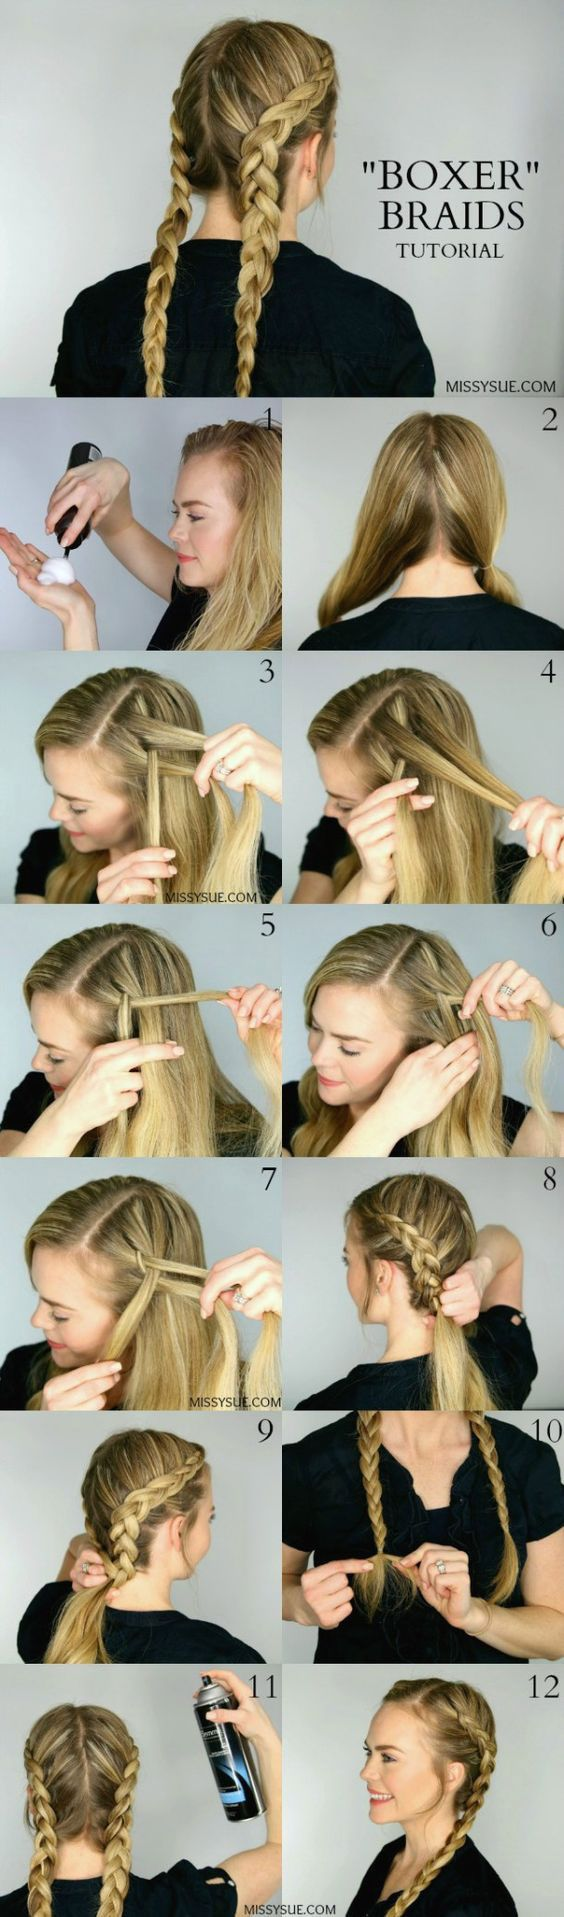 "A few months ago, Kim Kardashian-West, Kylie Jenner, and Khloe Kardashian all started posting Instagram selfies with their hair in braided pigtails… and everyone freaked out. The braids were quickly duplicated by supermodels like Kendall Jenner, Hailee Baldwin, and Gigi Hadid, and were then coined ""boxer braids"" by… well, actually, I don't know who started calling them that."